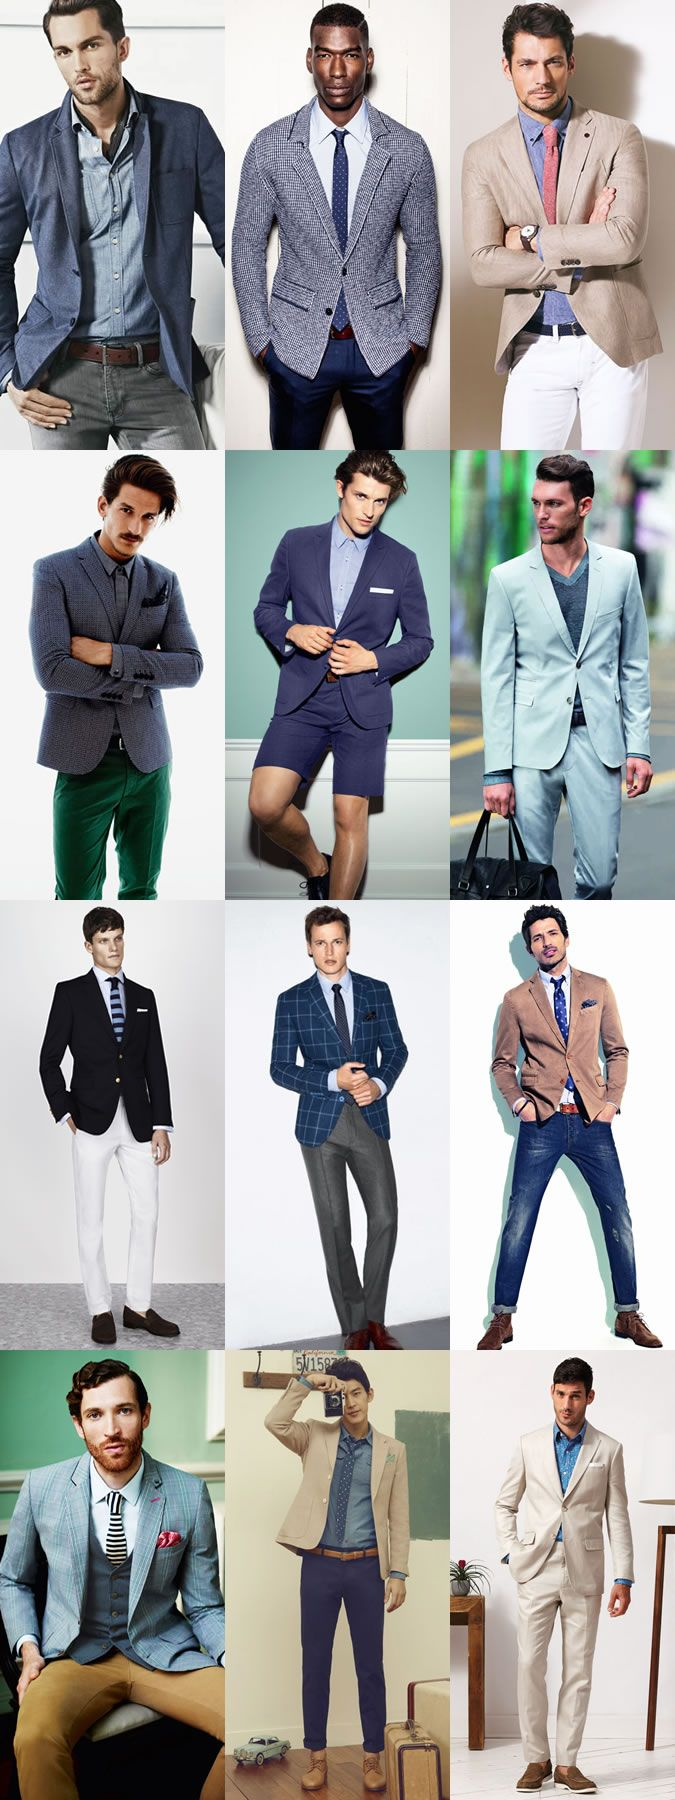 Mens Smart-Casual Office Dress Code Lookbook - Spring/Summer Inspired for the creatives via fashionbeans